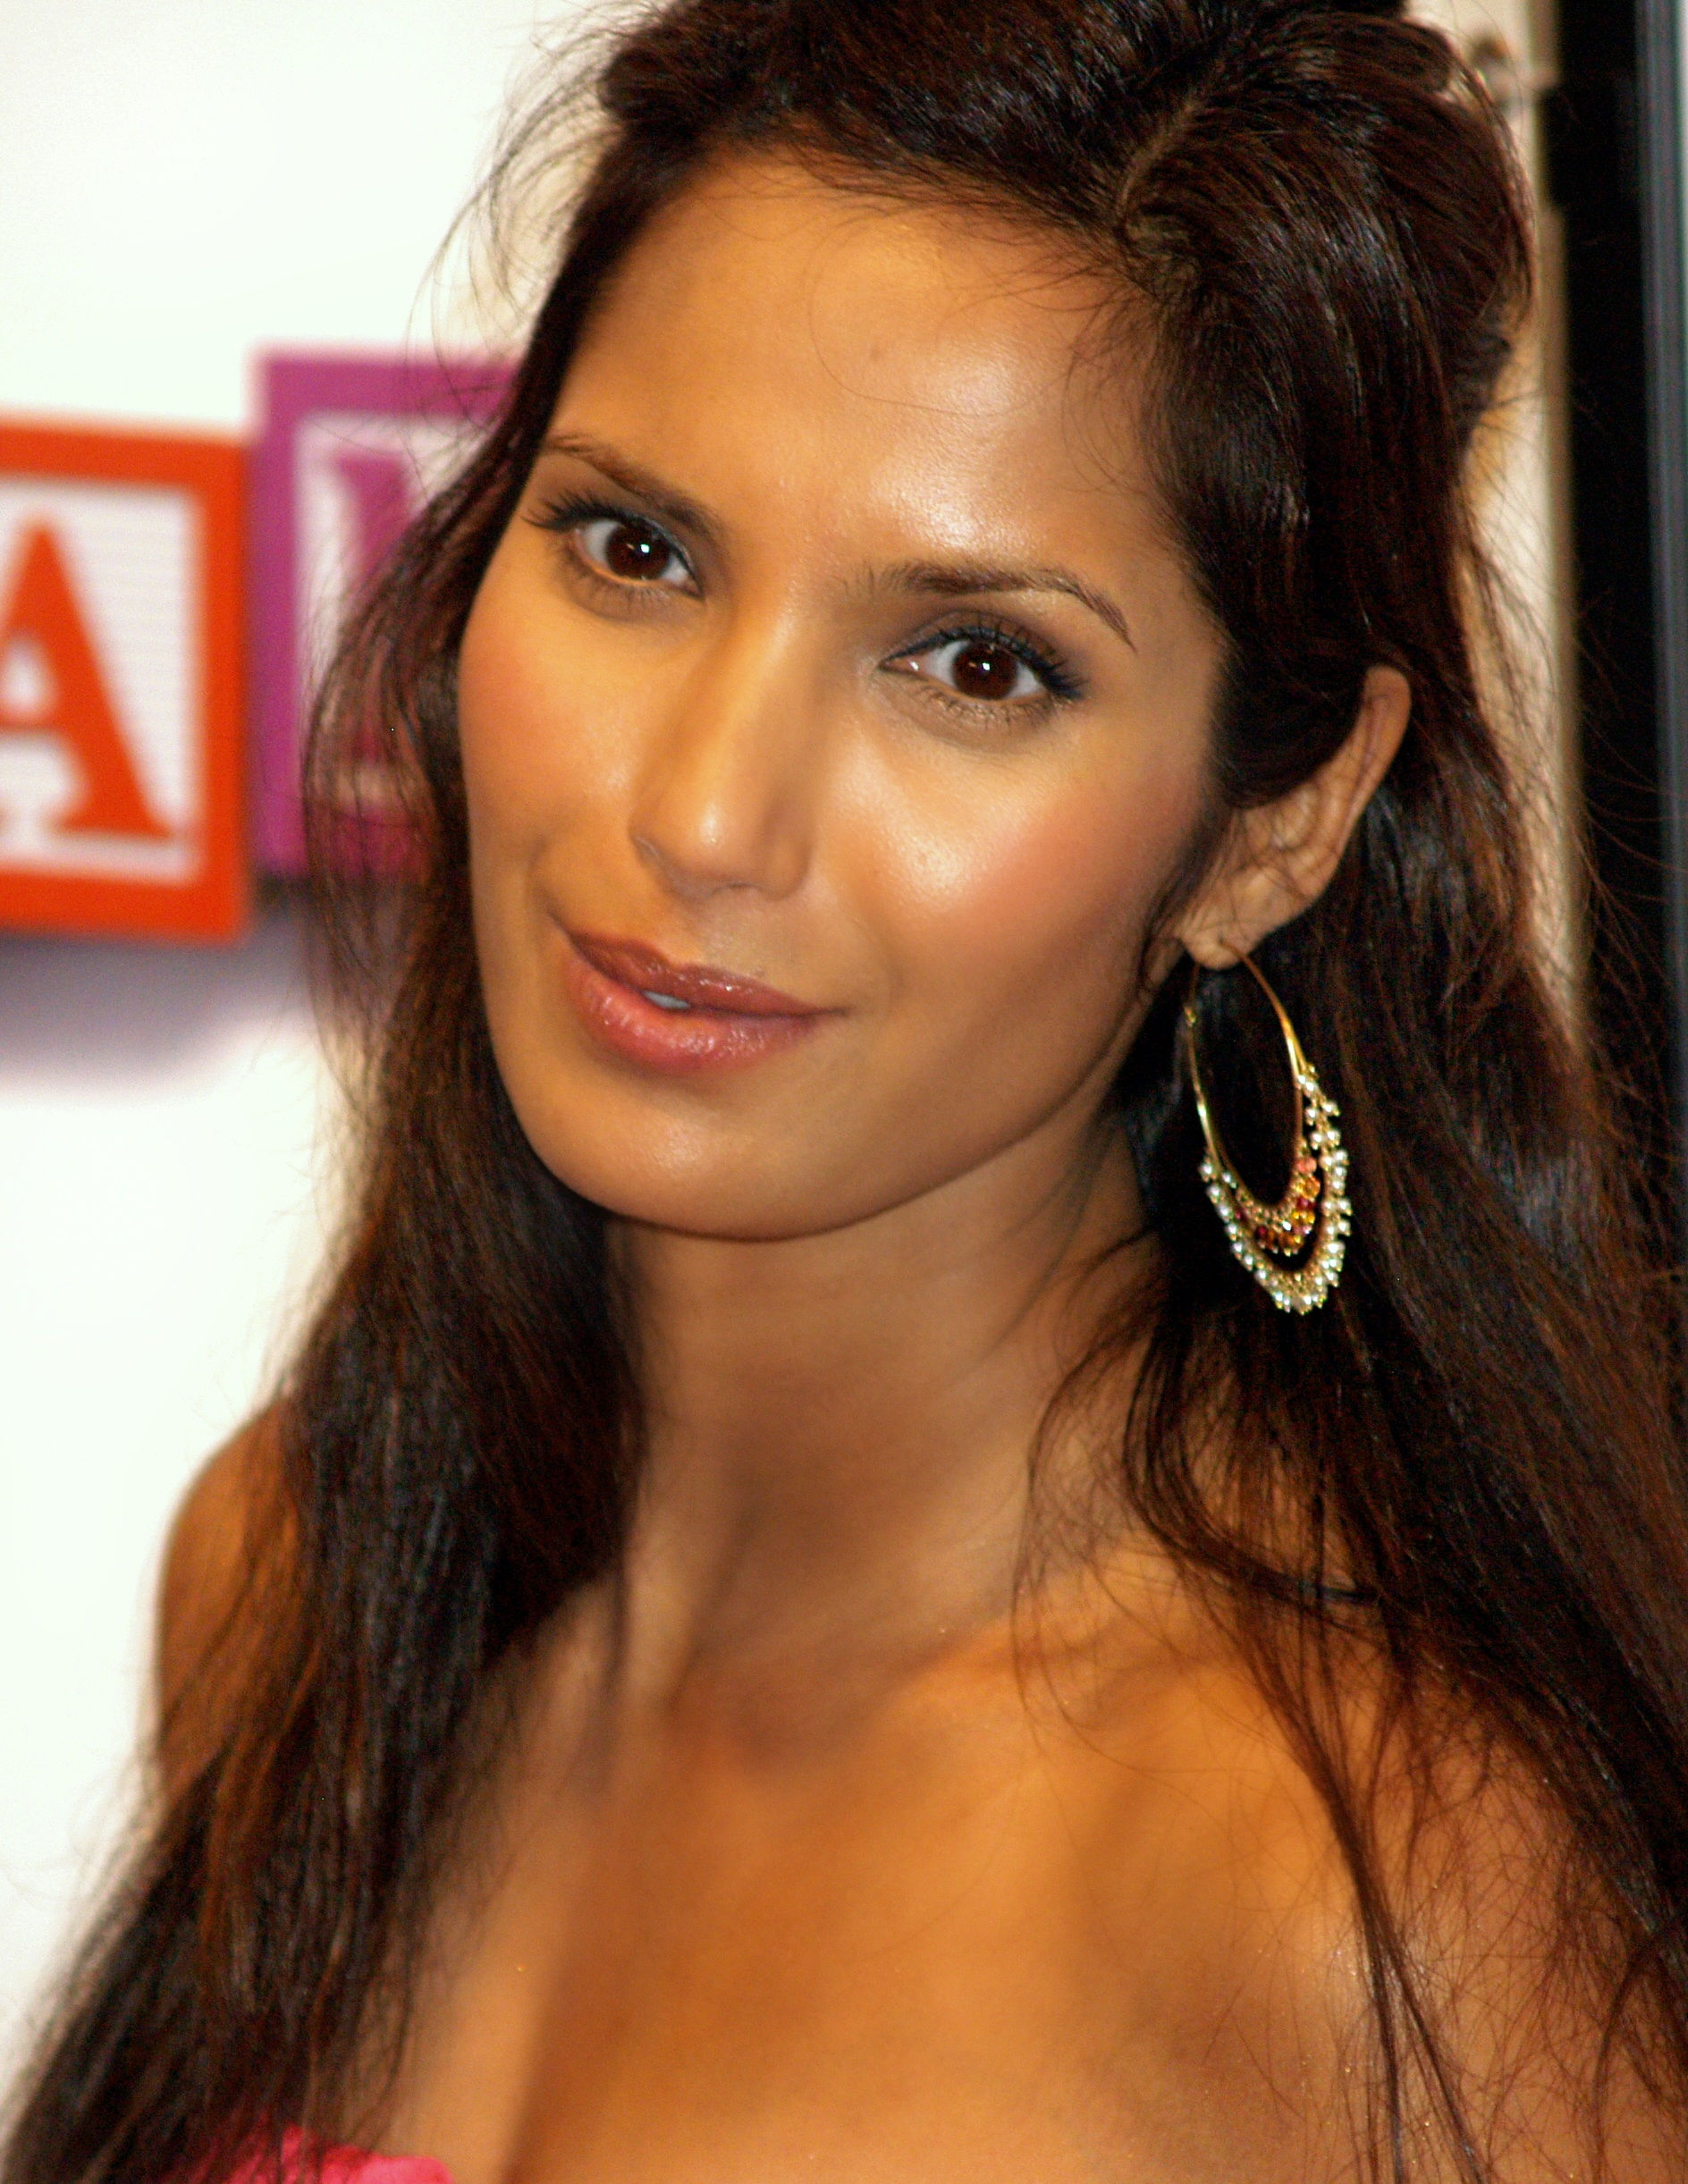 Photo of Padma Lakshmi: An Indian-born American author, actress, model, television host and executive producer